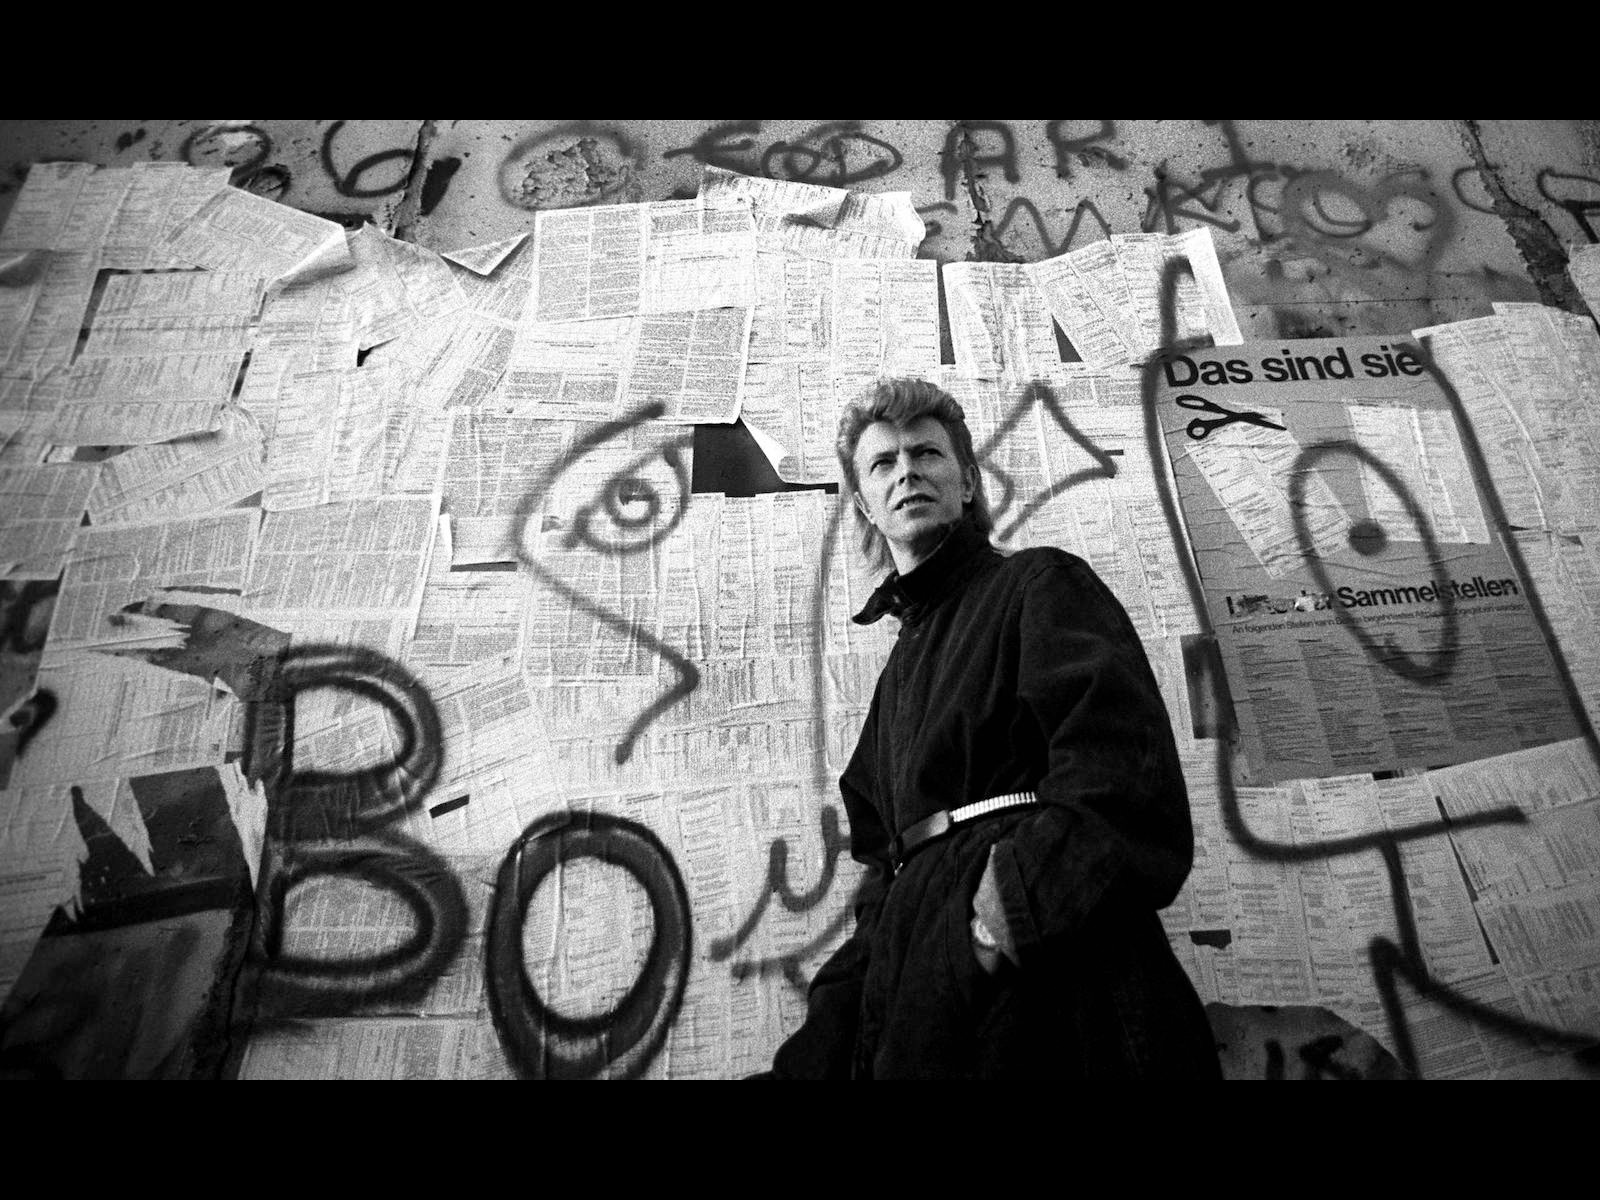 DAVID BOWIE – BERLIN TRILOGY